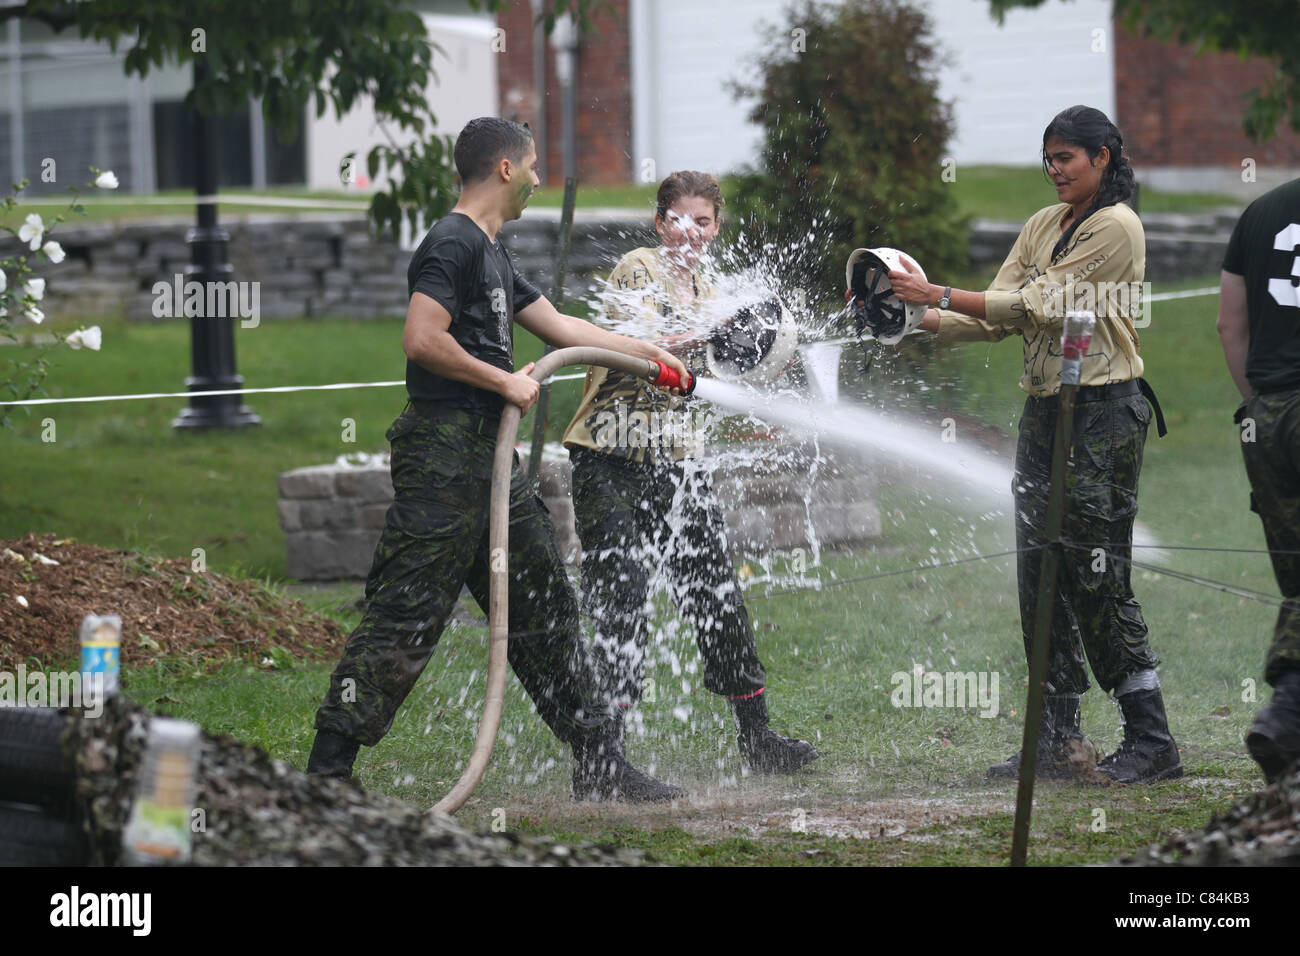 Military man spraying a fire hose, girl stopping the spray with a helmet Stock Photo